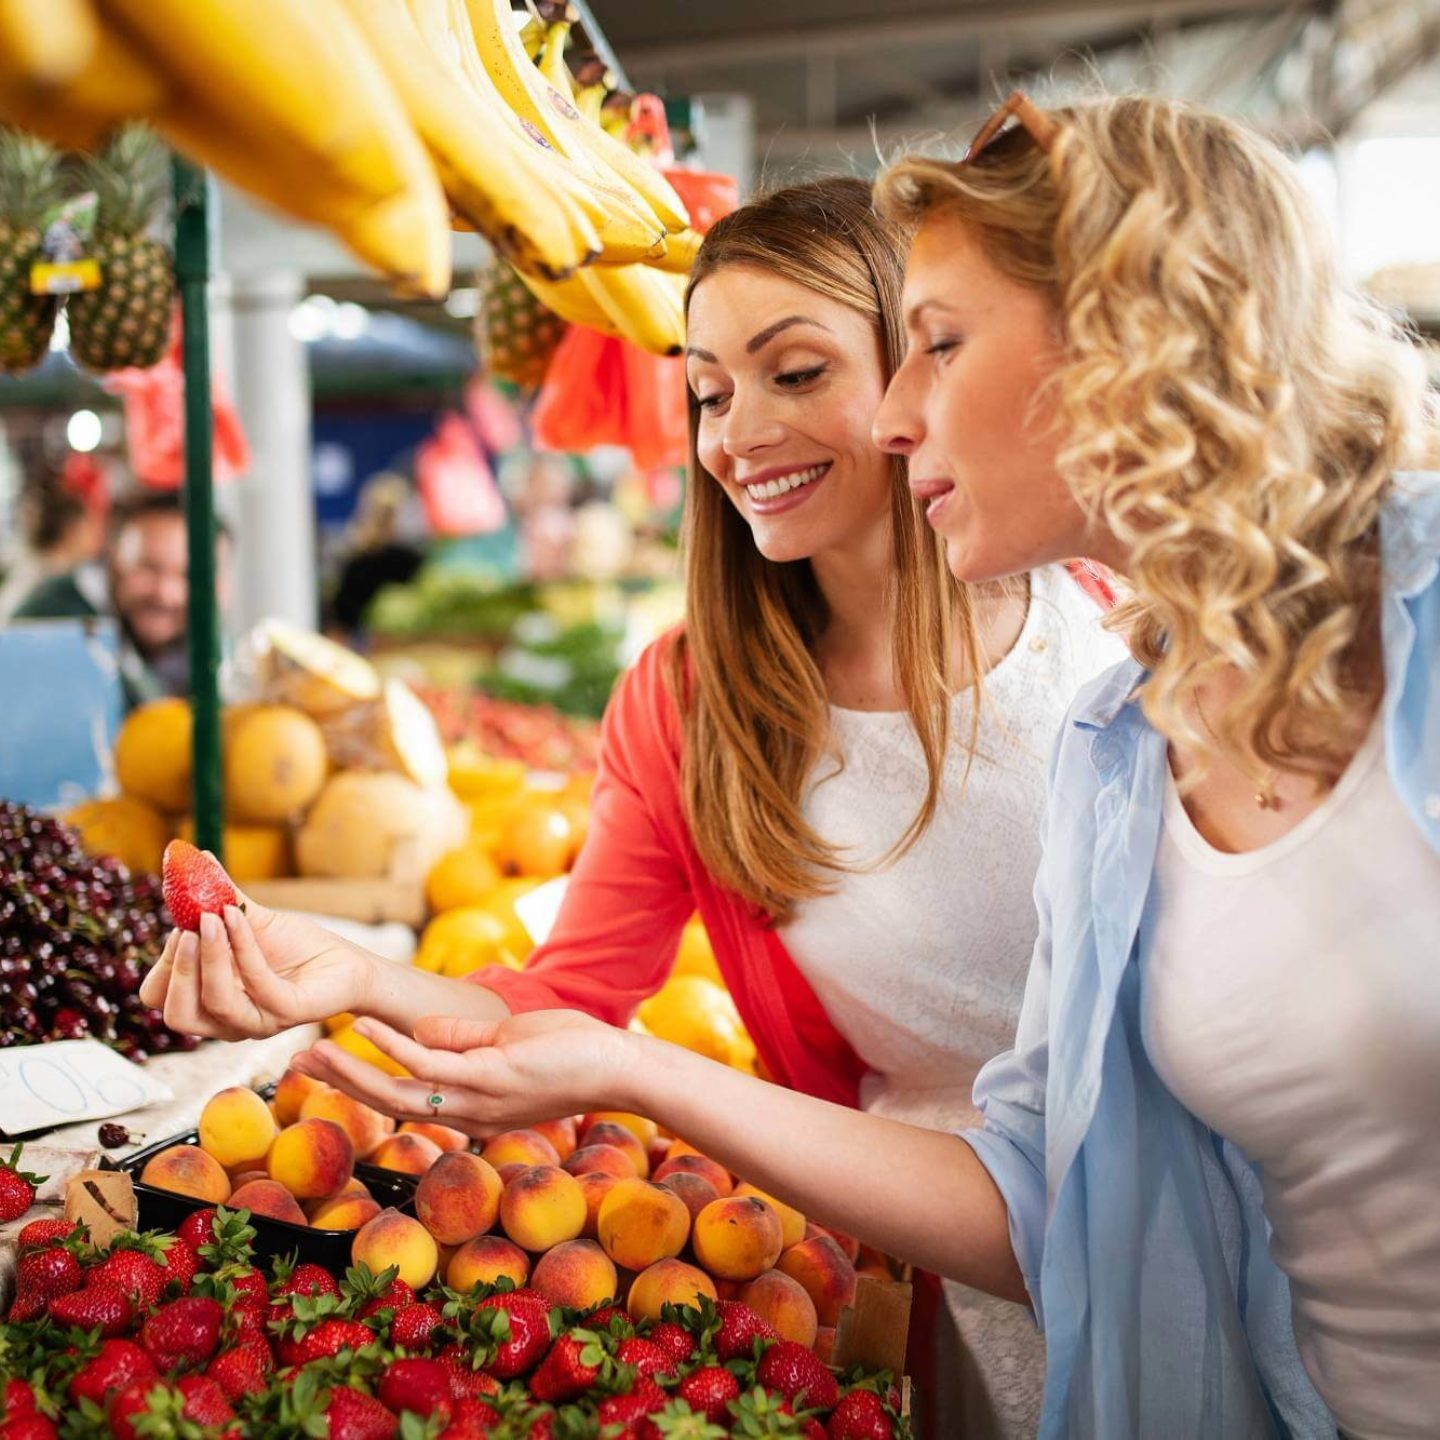 Happy young women shopping fruits in the market - Clear the Confusion About Organic and Non-GMO Food   NSF International